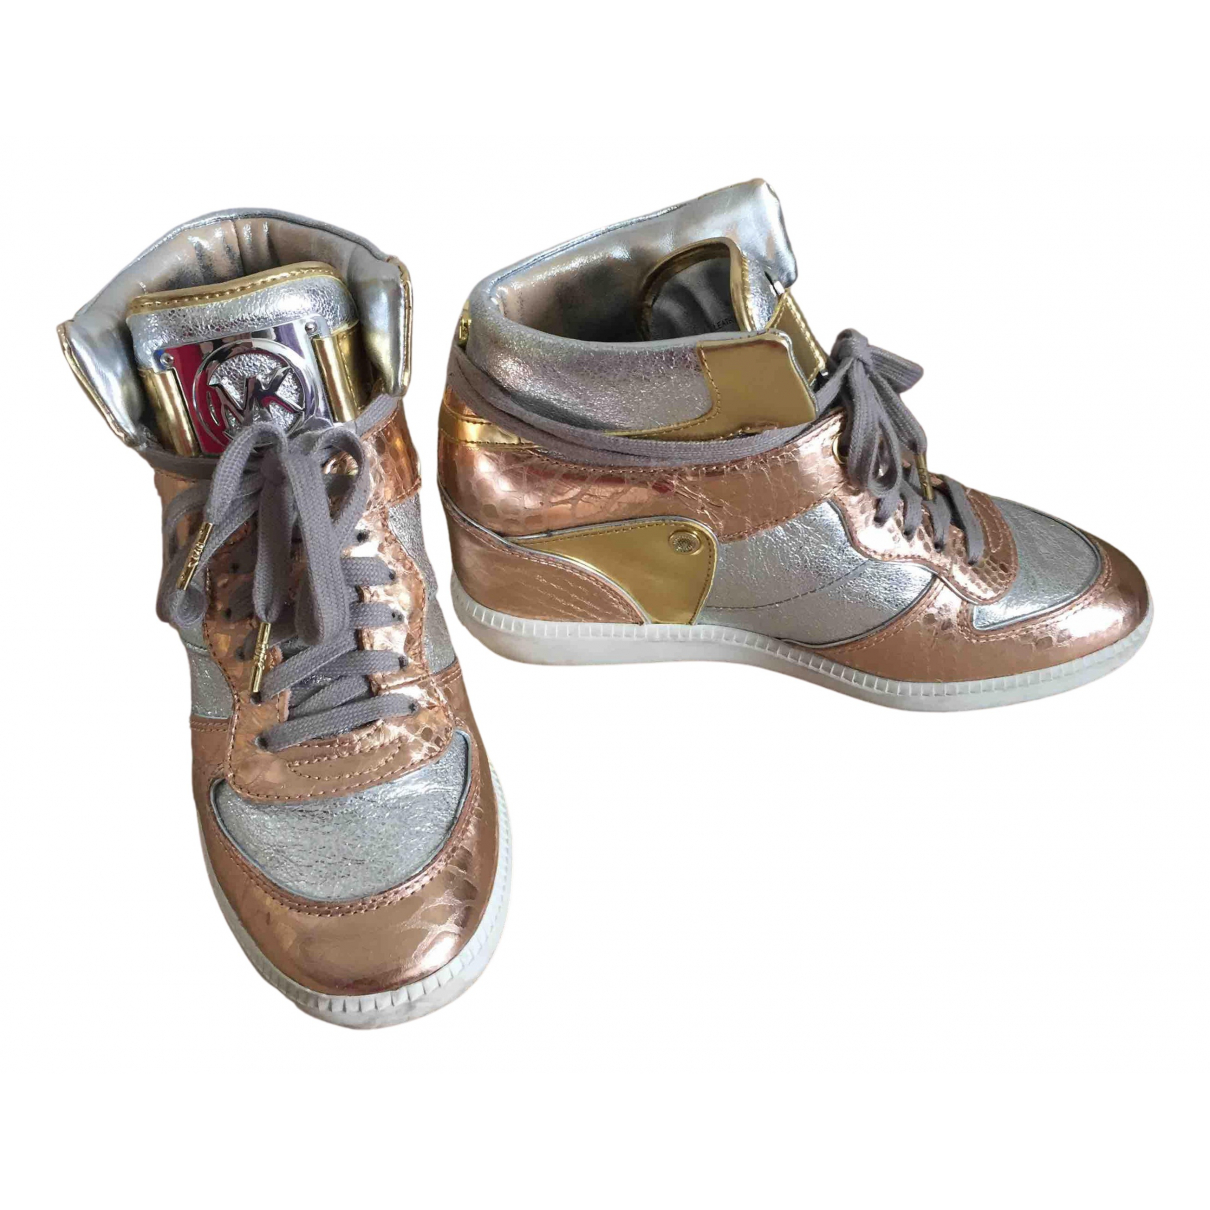 Michael Kors N Multicolour Leather Trainers for Women 8 US